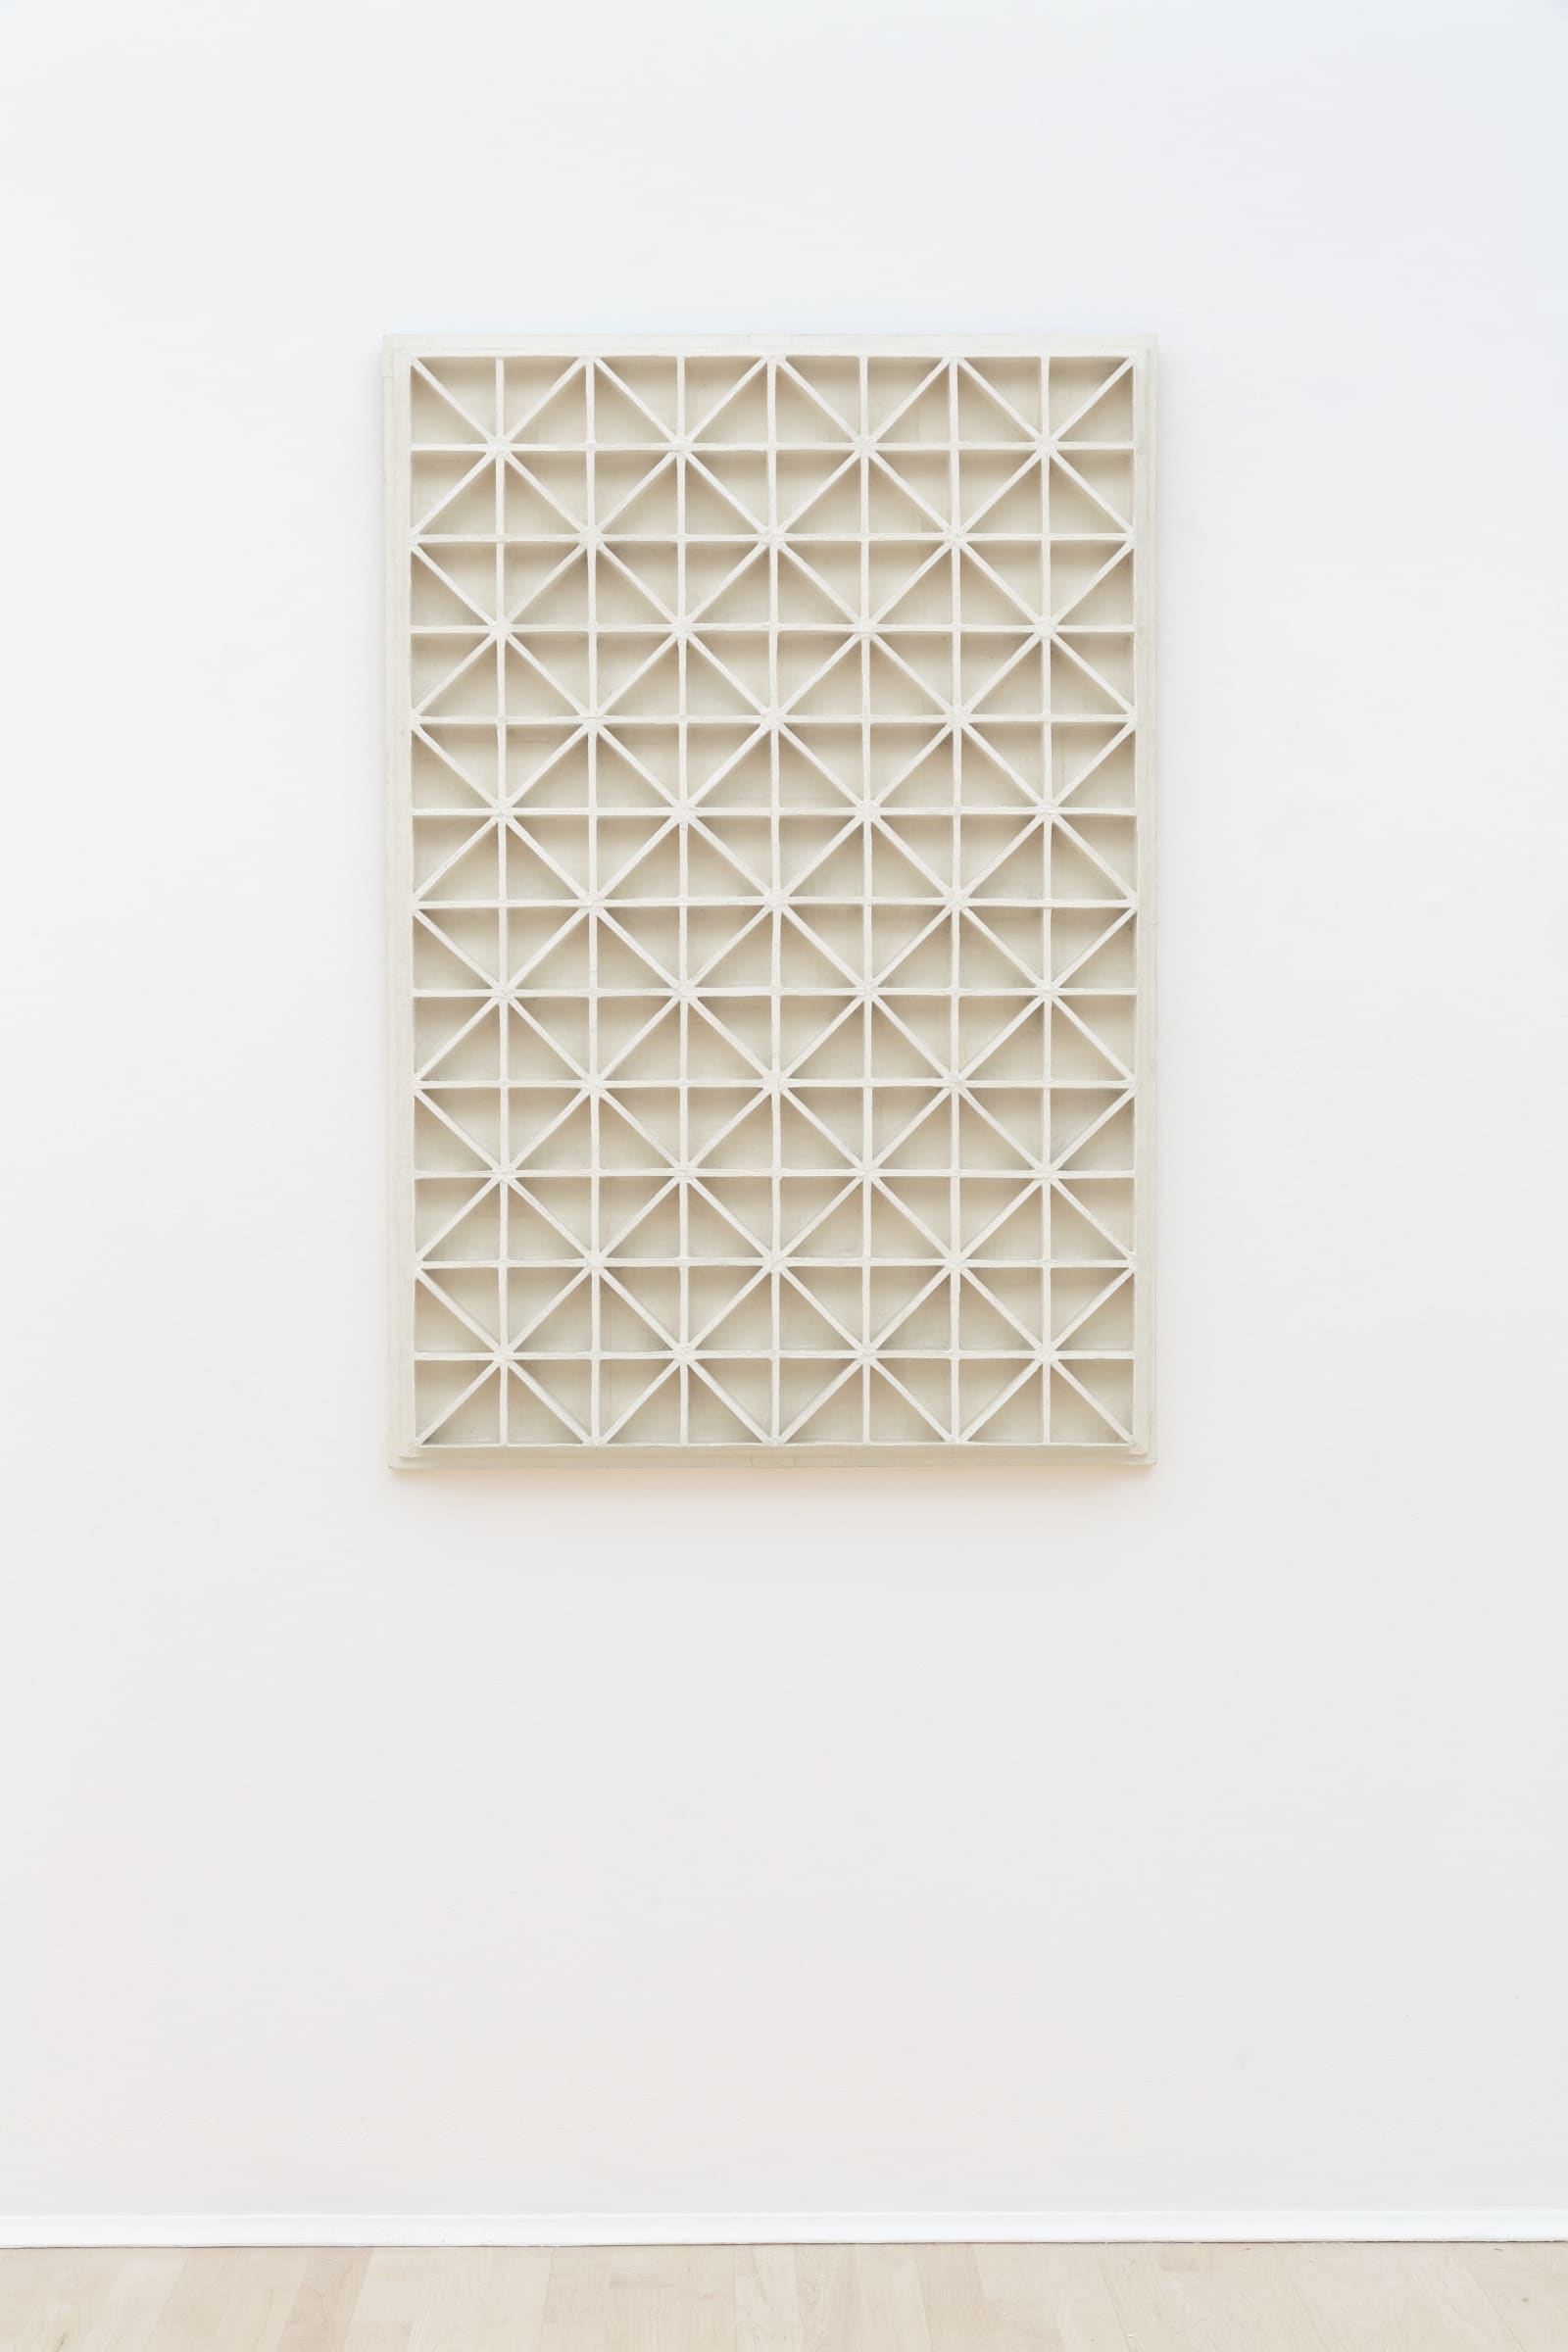 "<span class=""link fancybox-details-link""><a href=""/artists/100-jan-schoonhoven/works/11087-jan-schoonhoven-diagonalen-1967/"">View Detail Page</a></span><div class=""artist""><span class=""artist""><strong>JAN SCHOONHOVEN</strong></span></div>